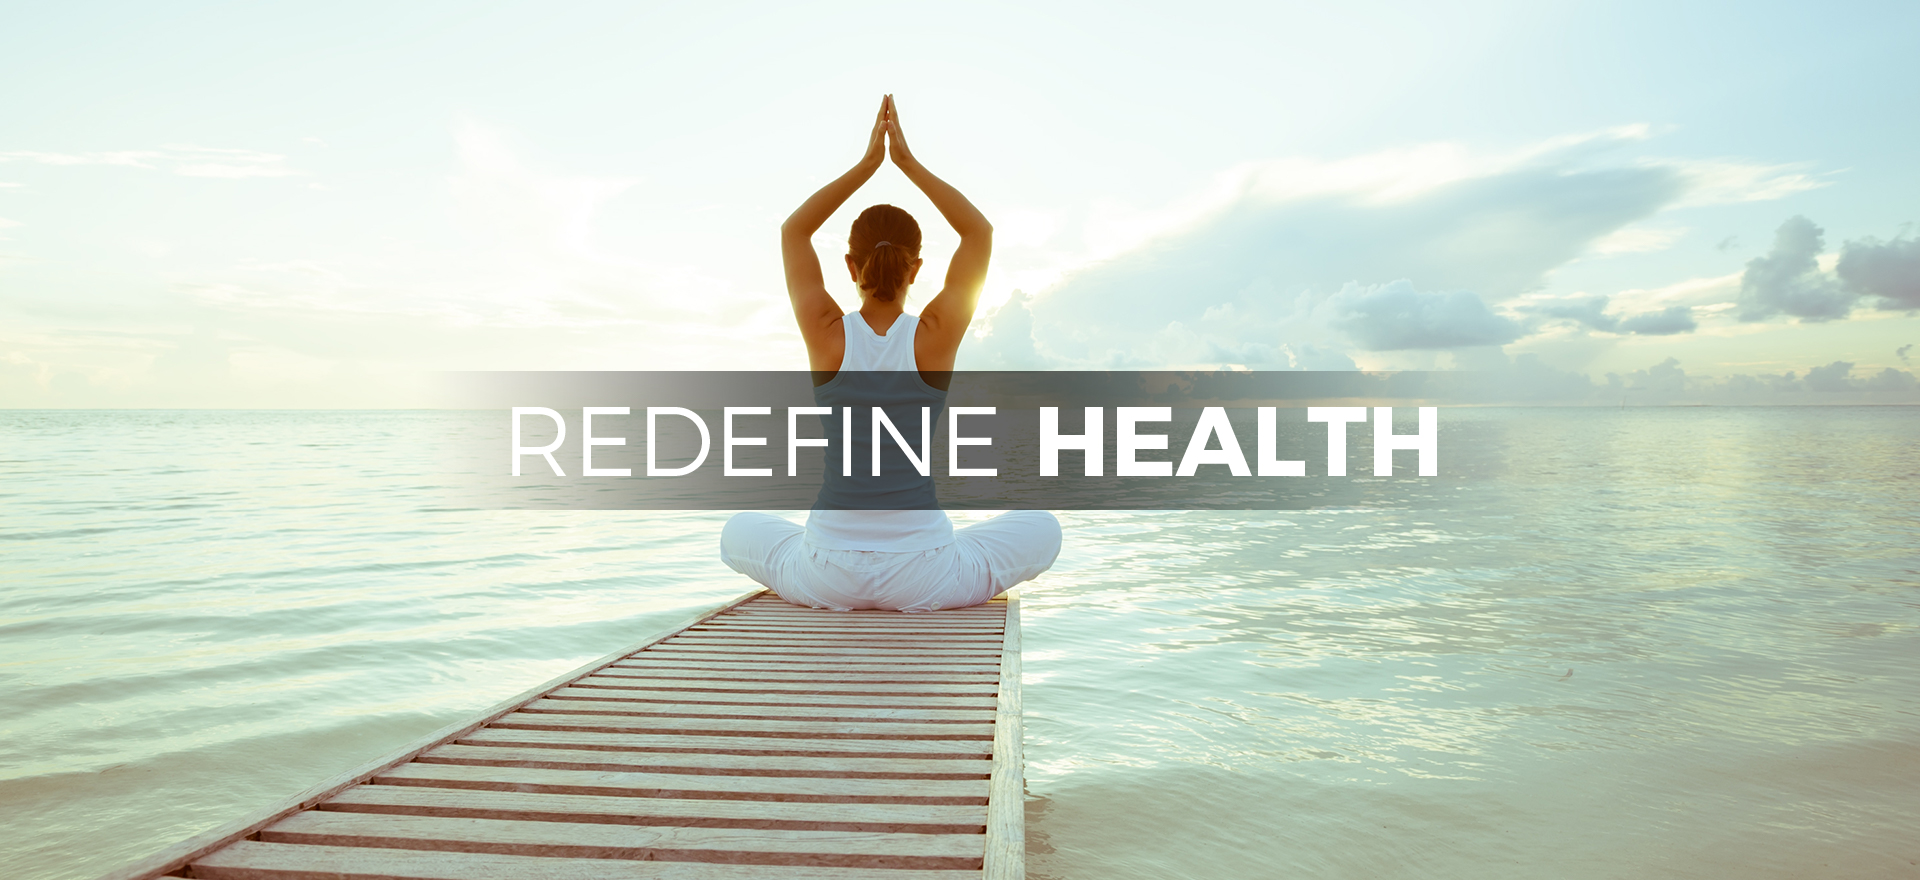 NuLife Ventures - Redefine Health